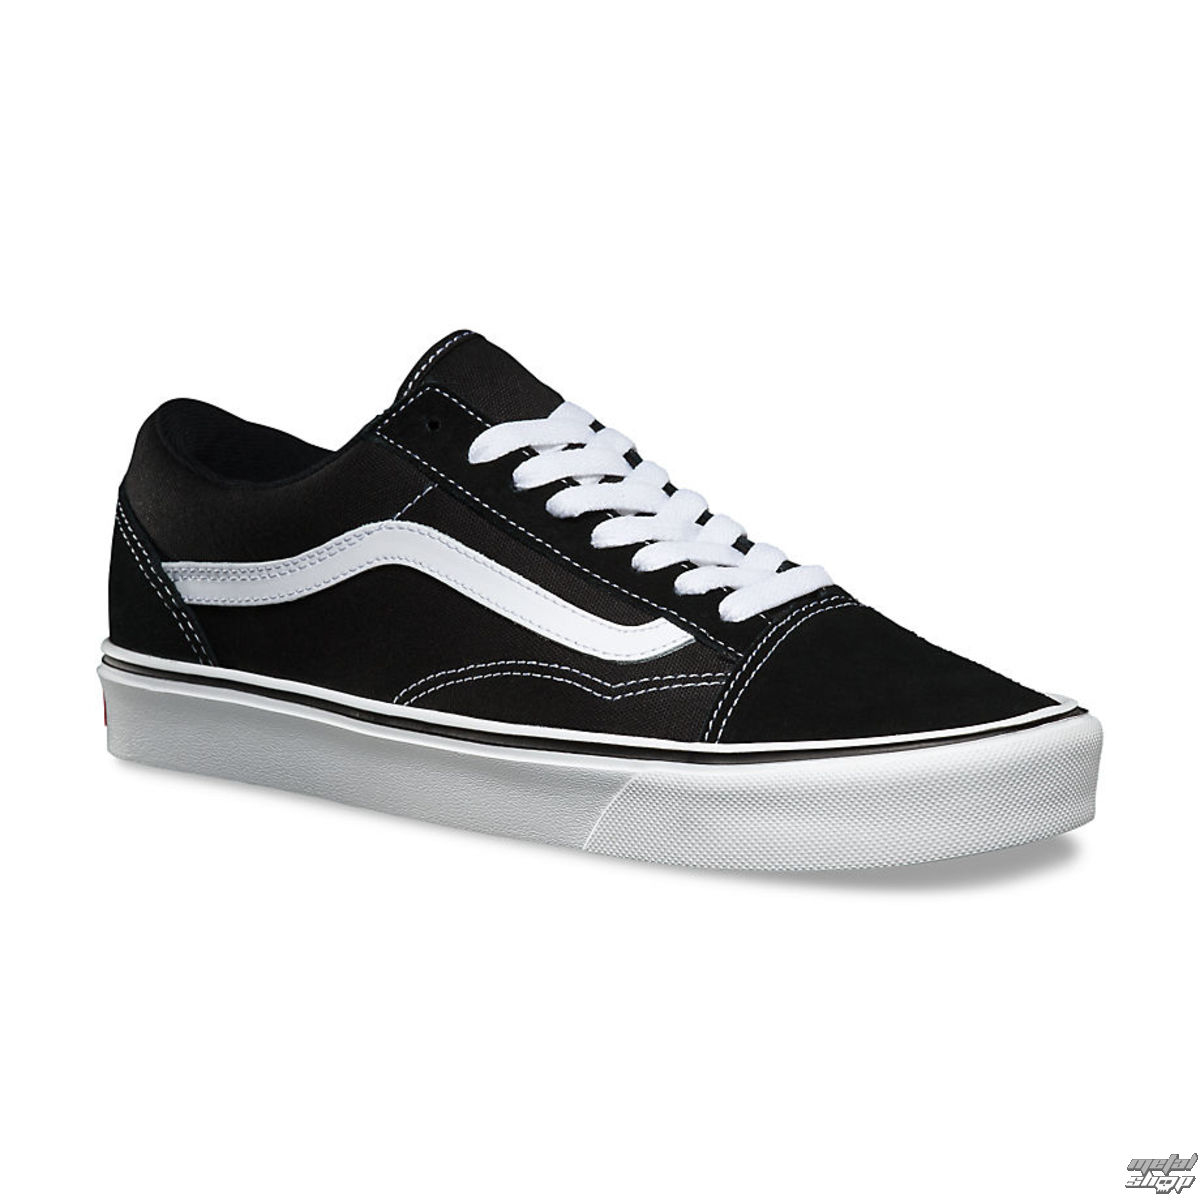 boty VANS - UA Old Skool Lite - Suede Canvas Black White ... c26c2c40653